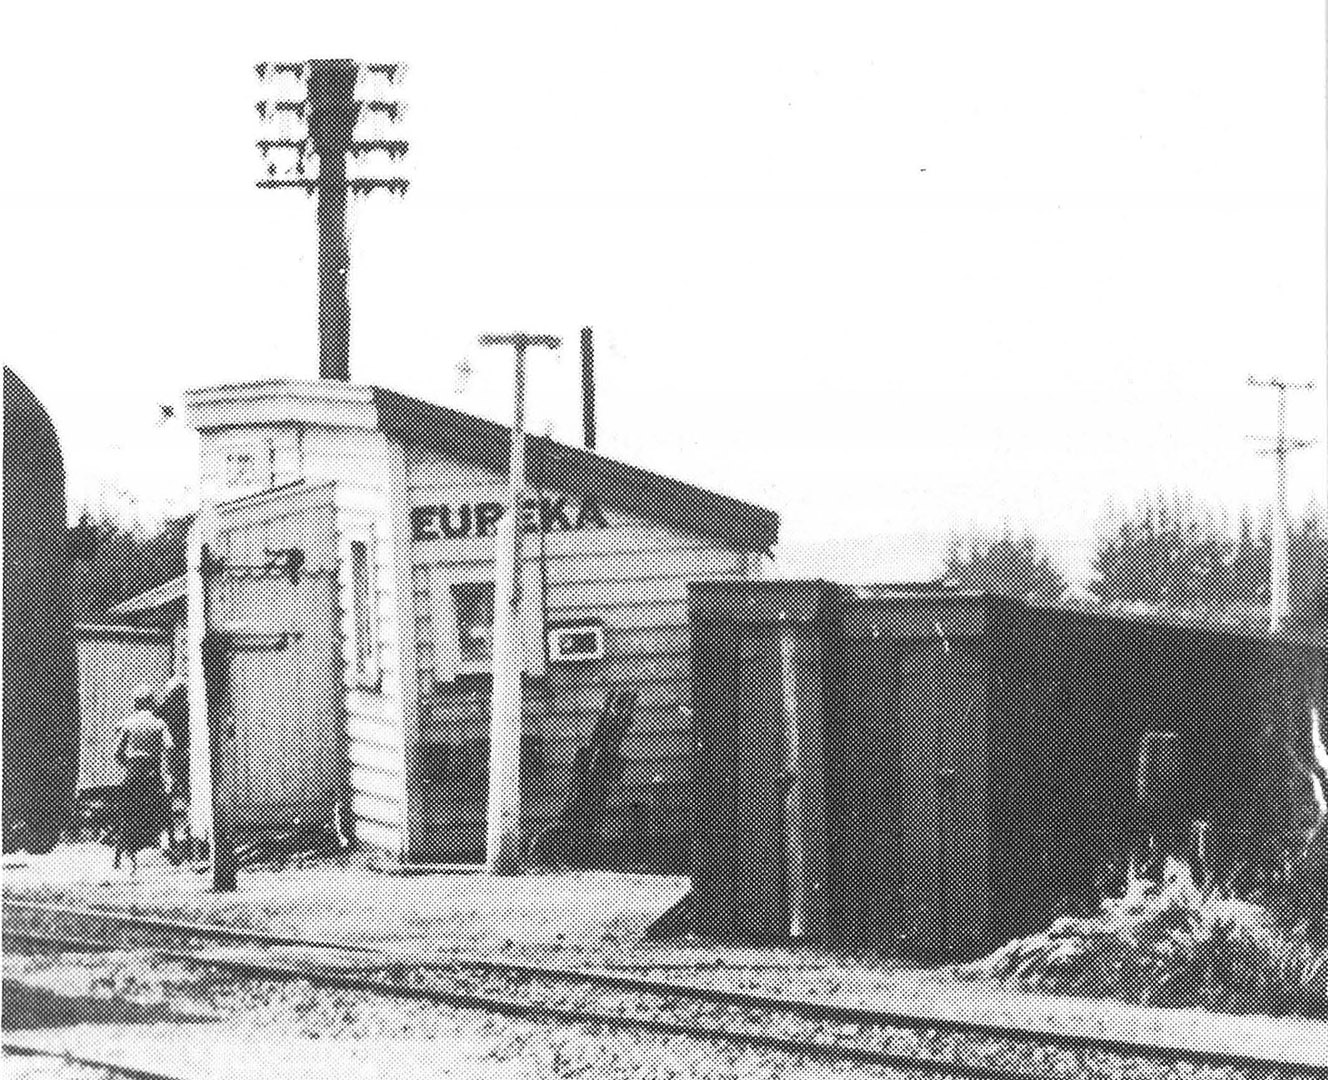 Eureka station as it was in 1956 looking from Hamilton